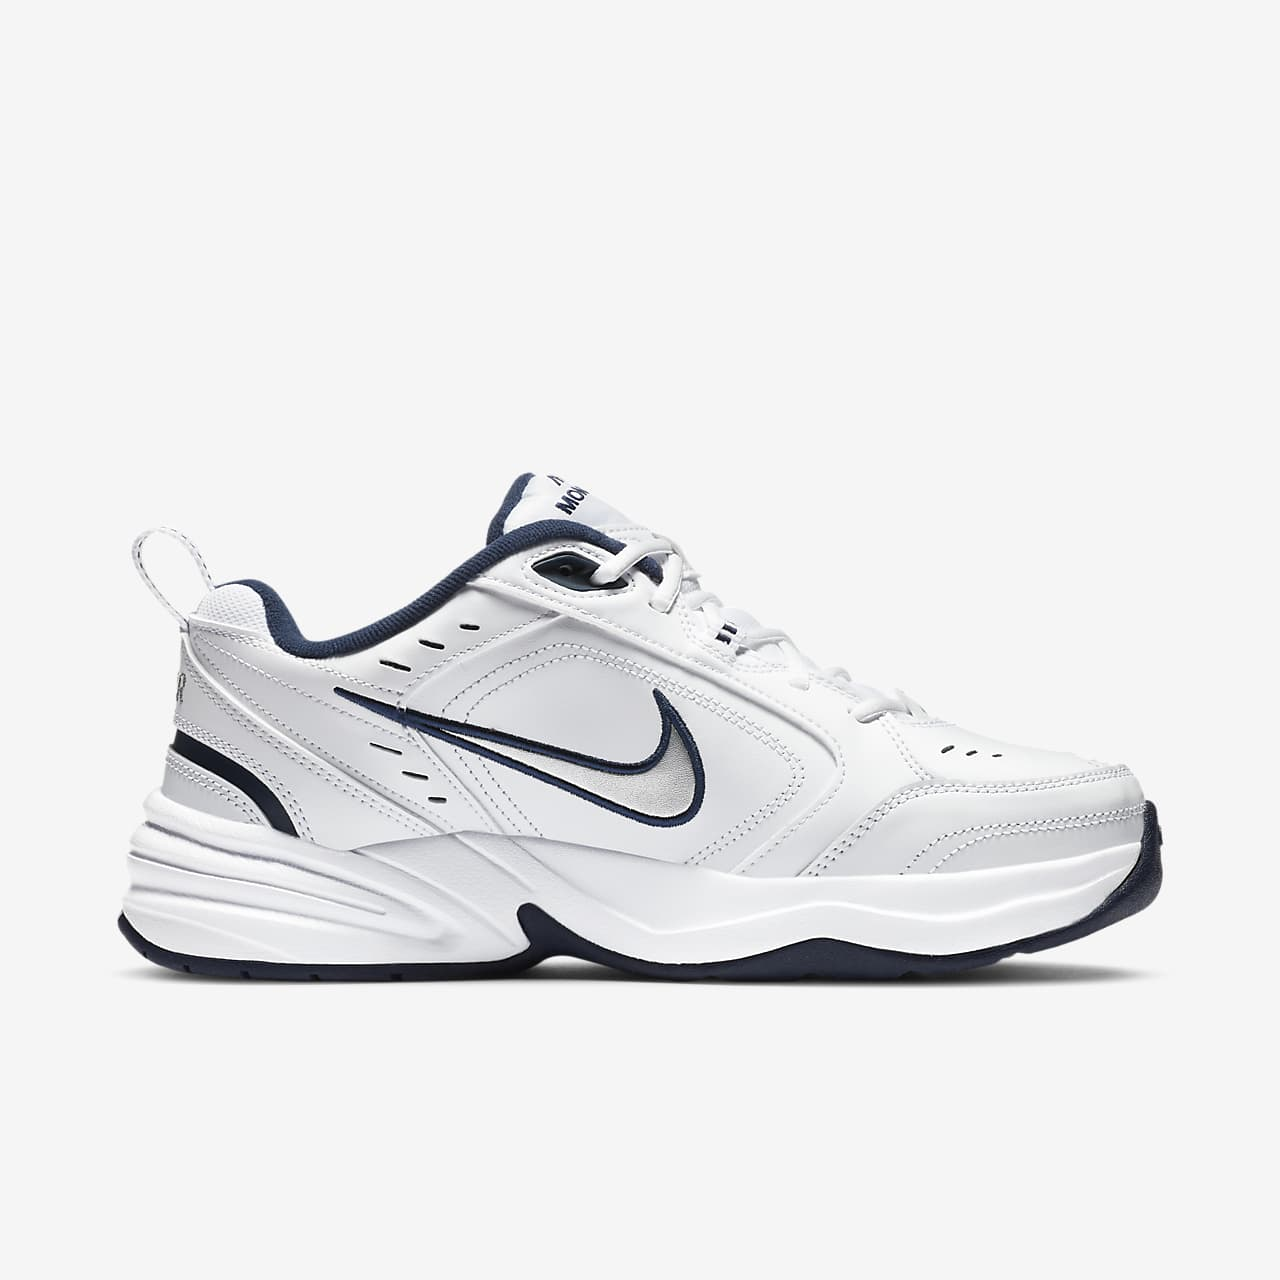 Nike M2k Tekno Schuh Silver from Nike on 21 Buttons